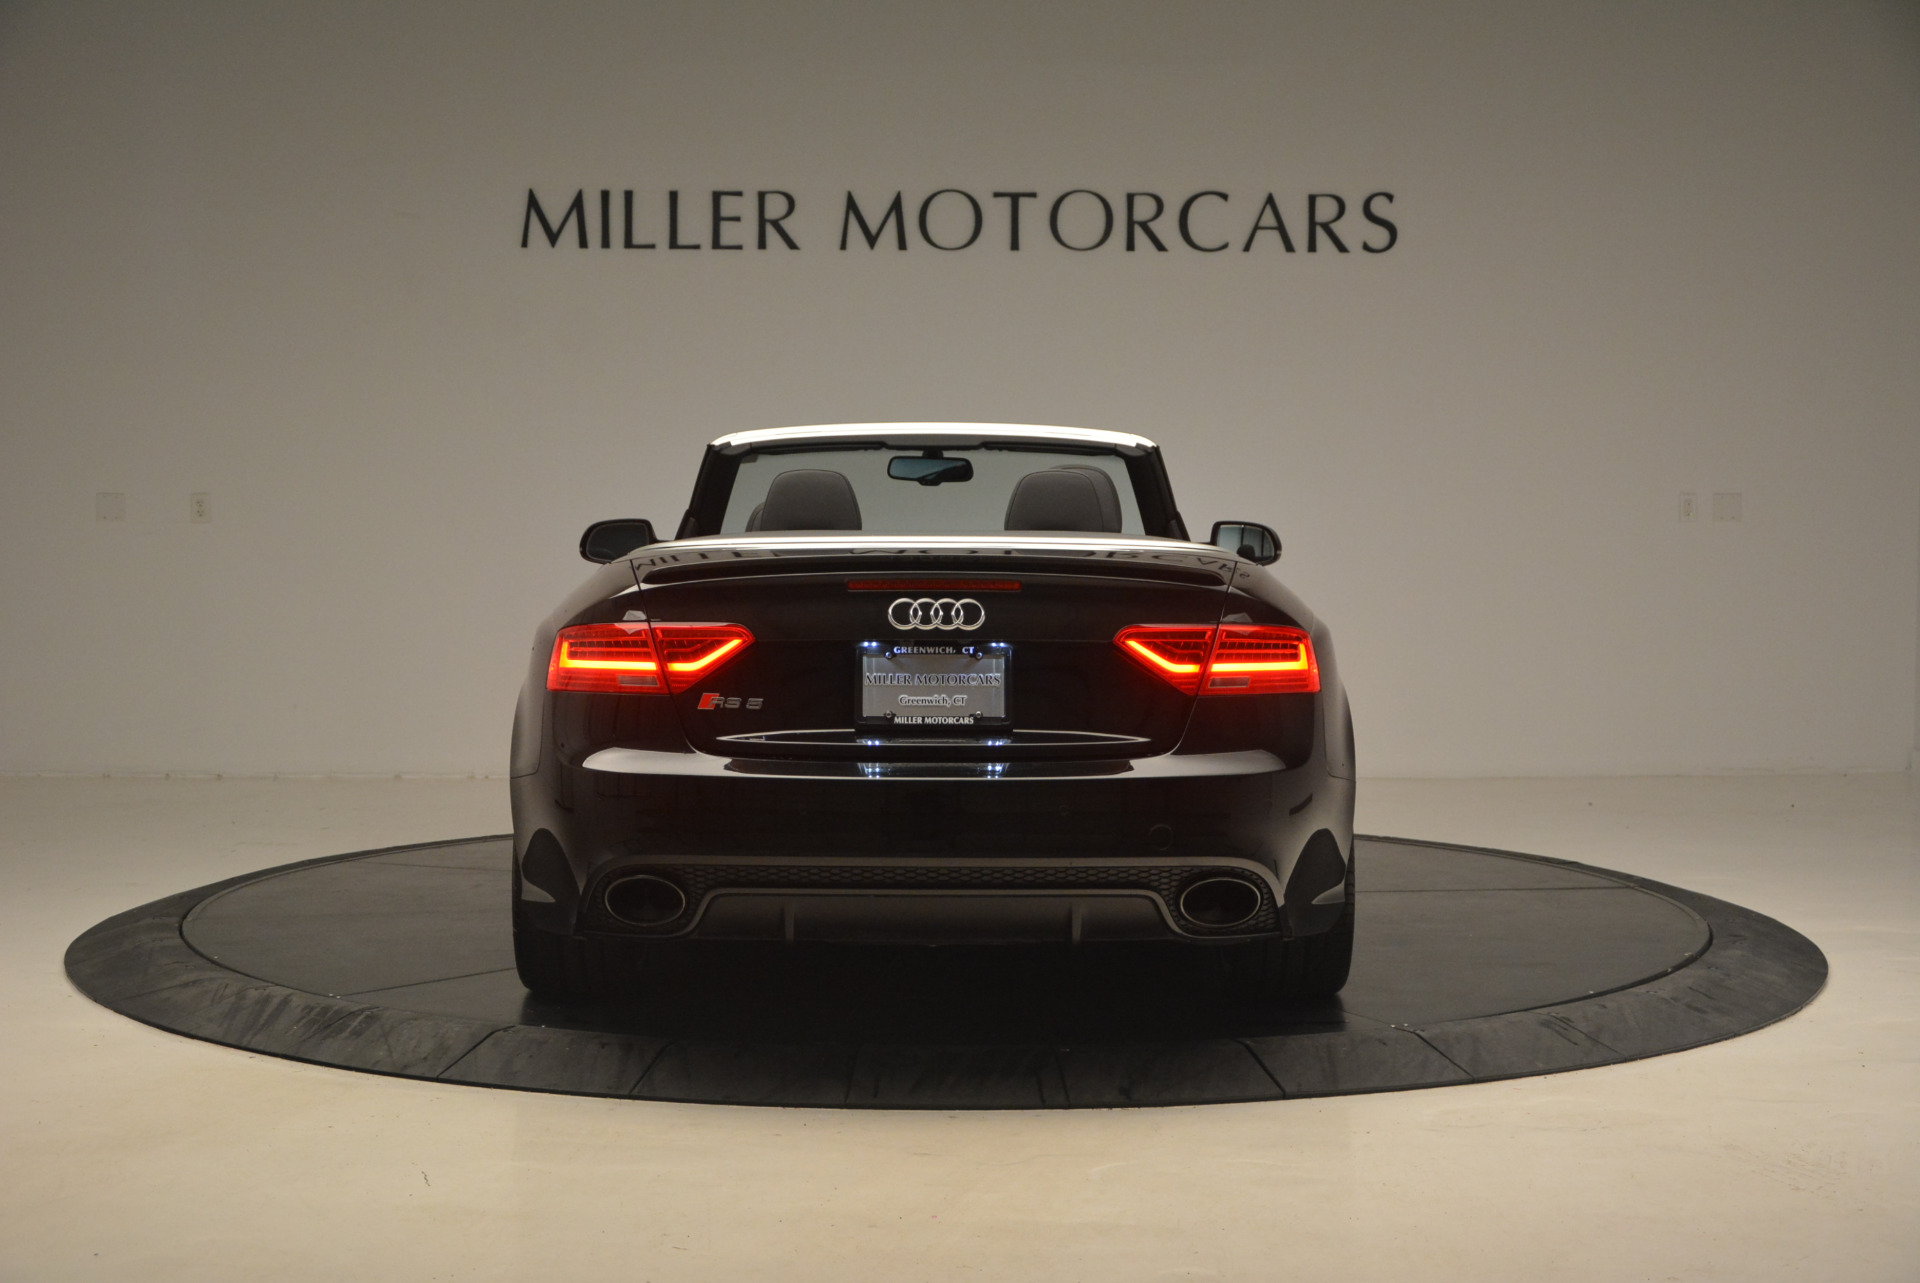 Used 2014 Audi RS 5 quattro For Sale In Greenwich, CT 1149_p6